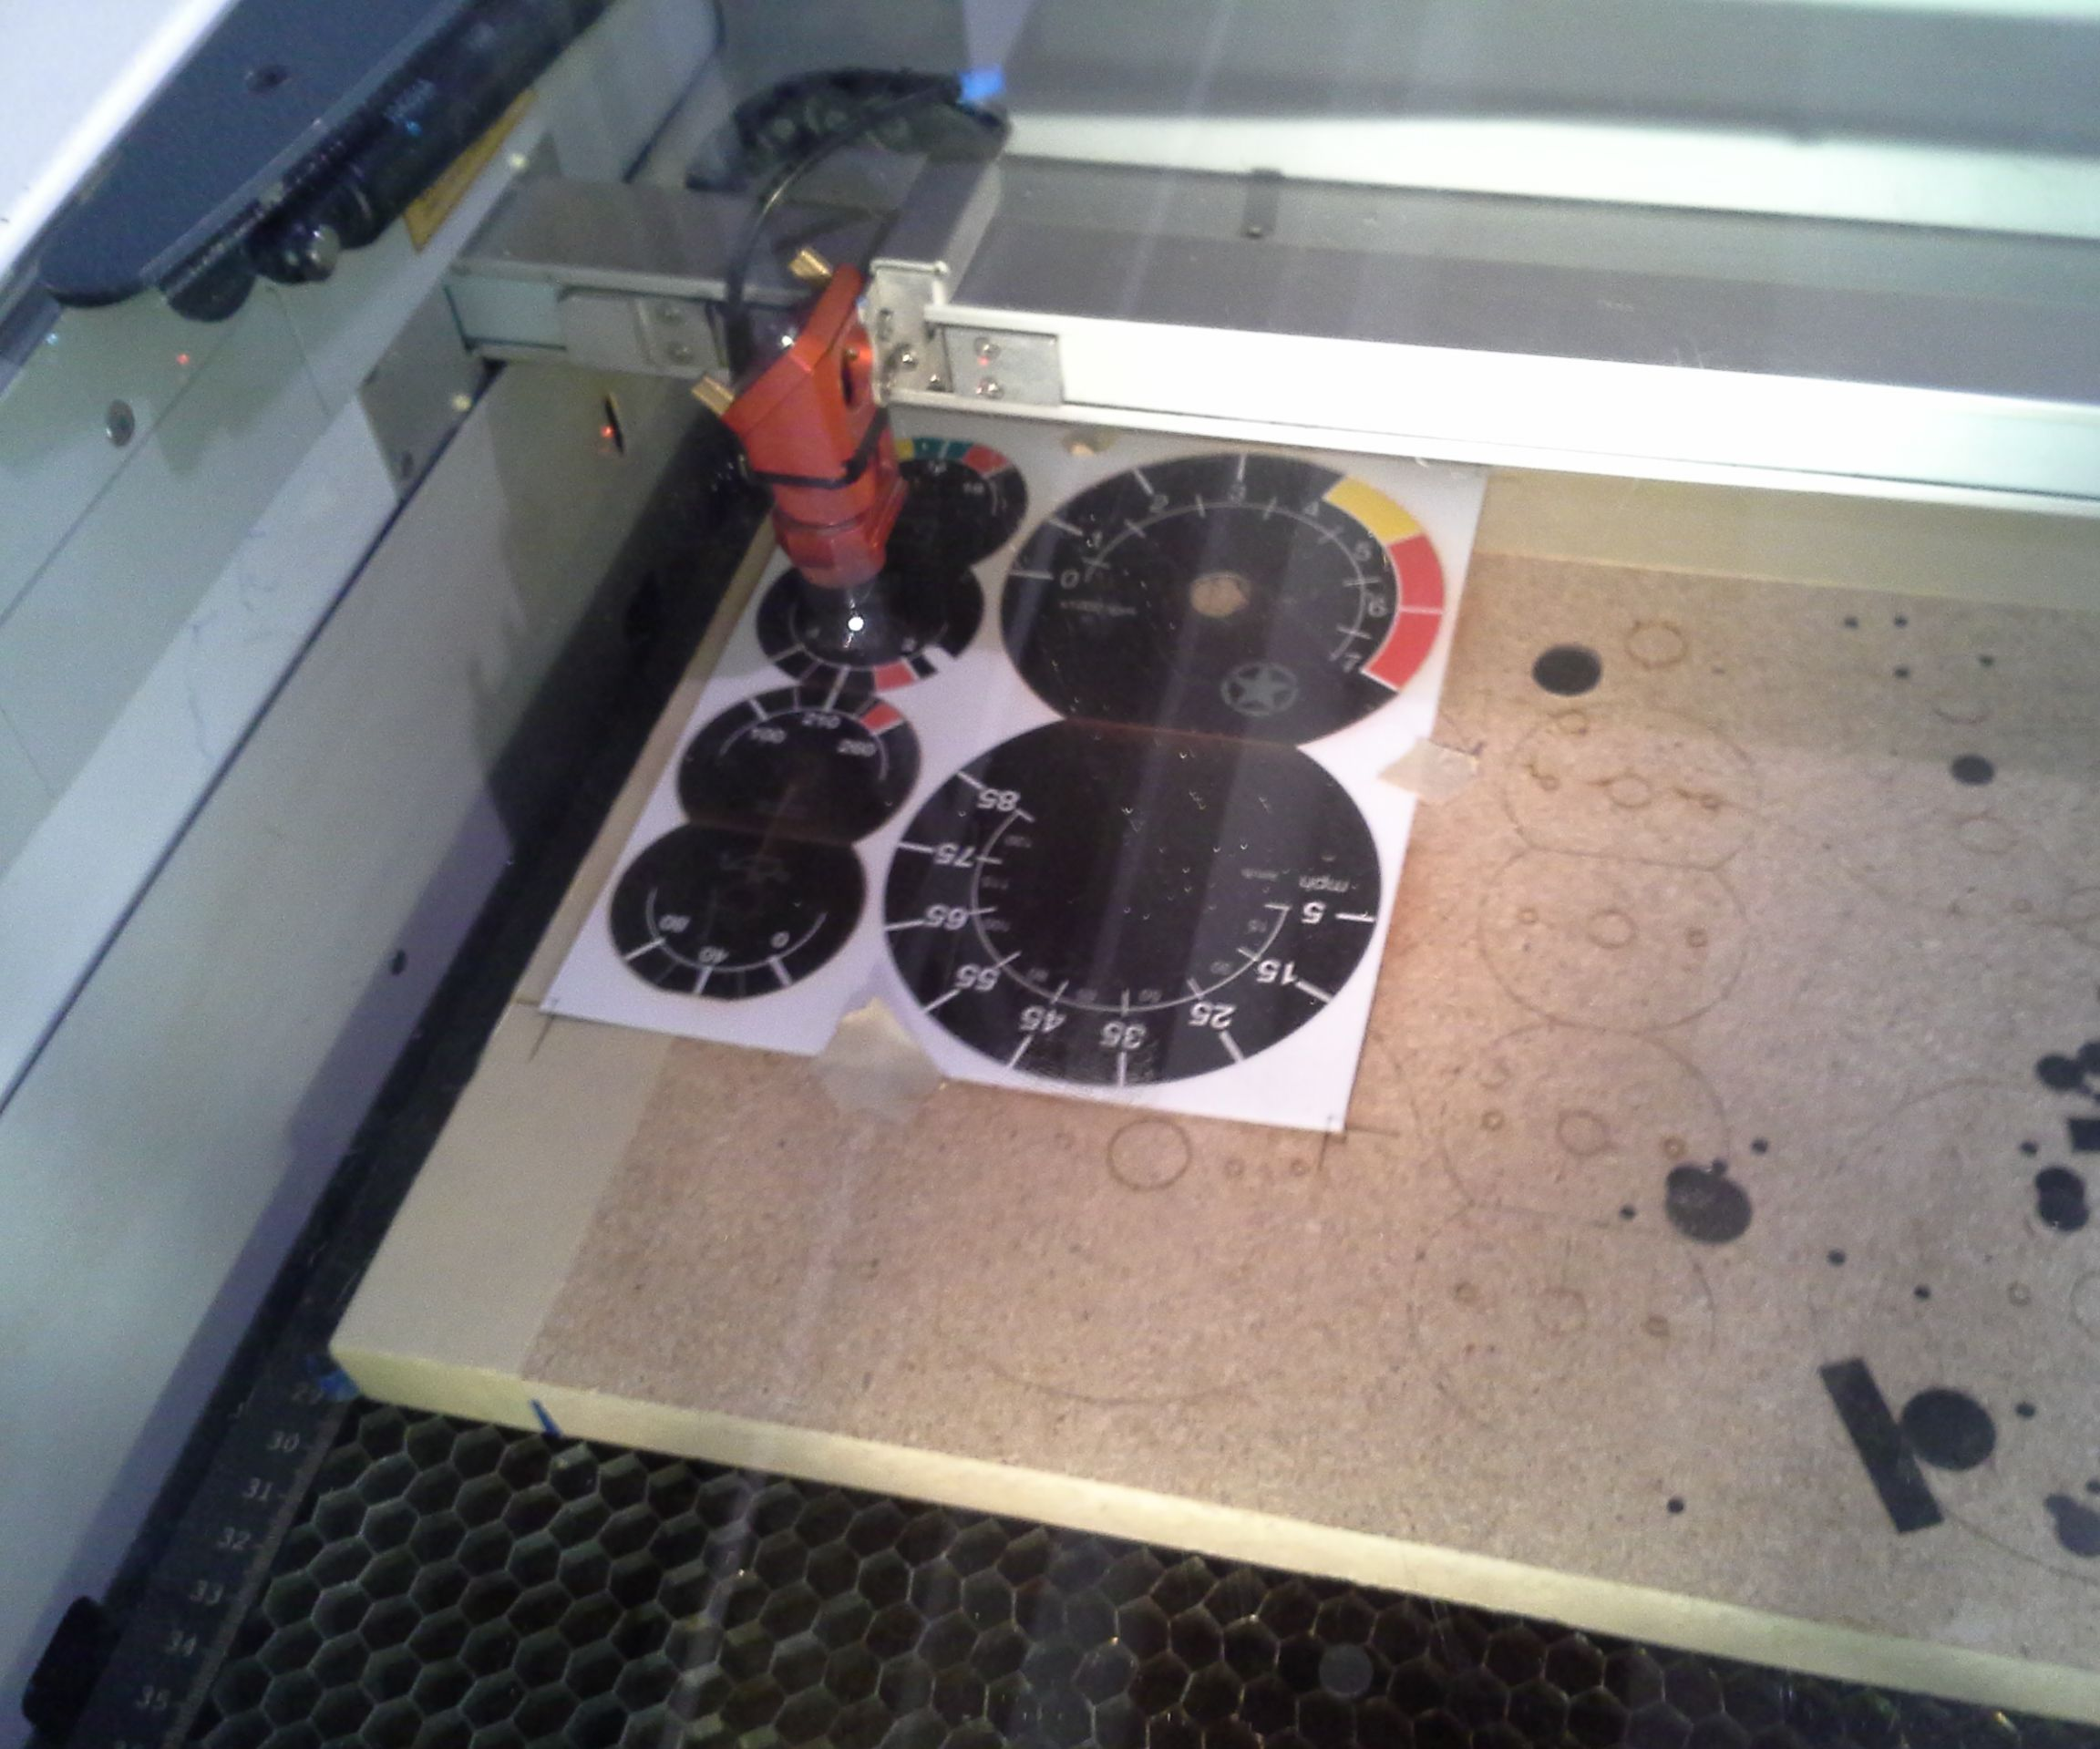 Print and then laser cut, a quick tutorial